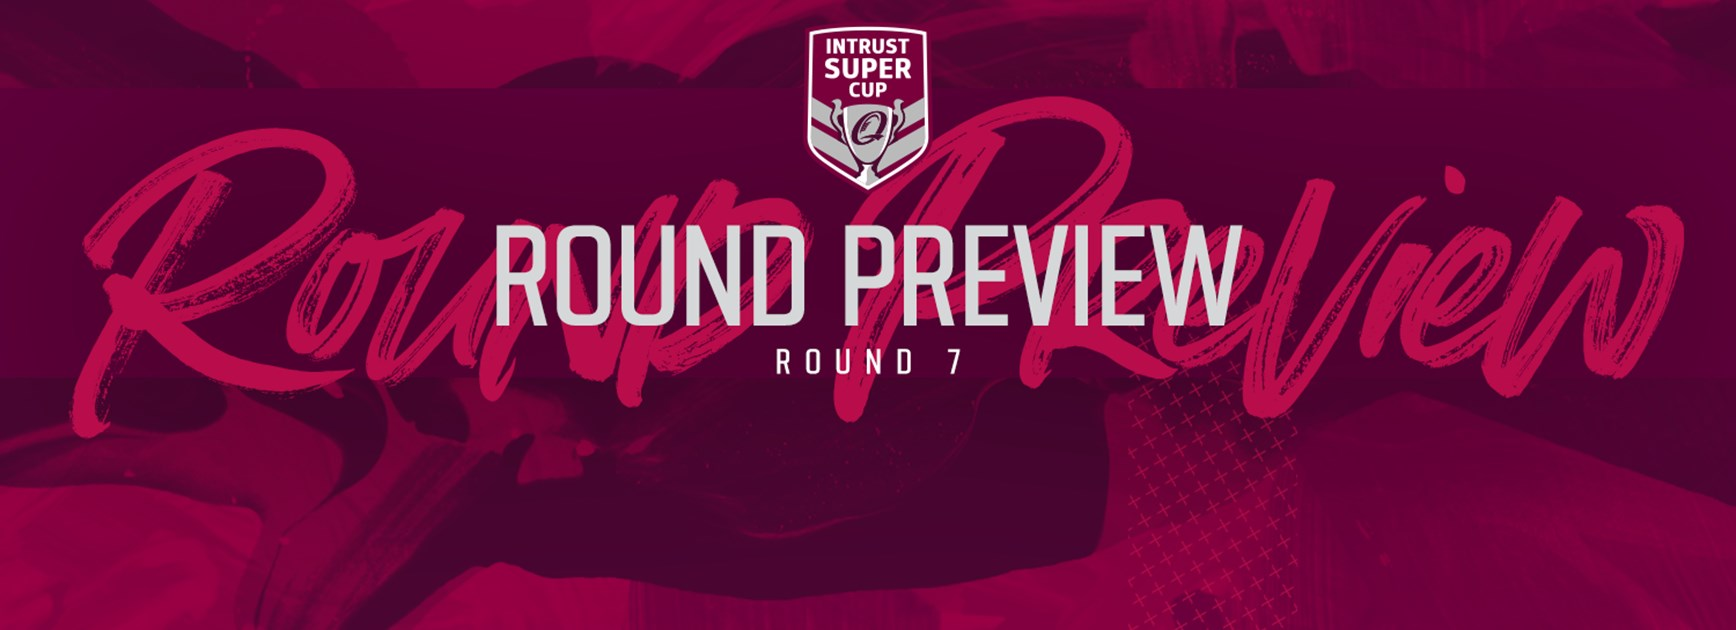 Round 7 Intrust Super Cup preview: Easter footy feast